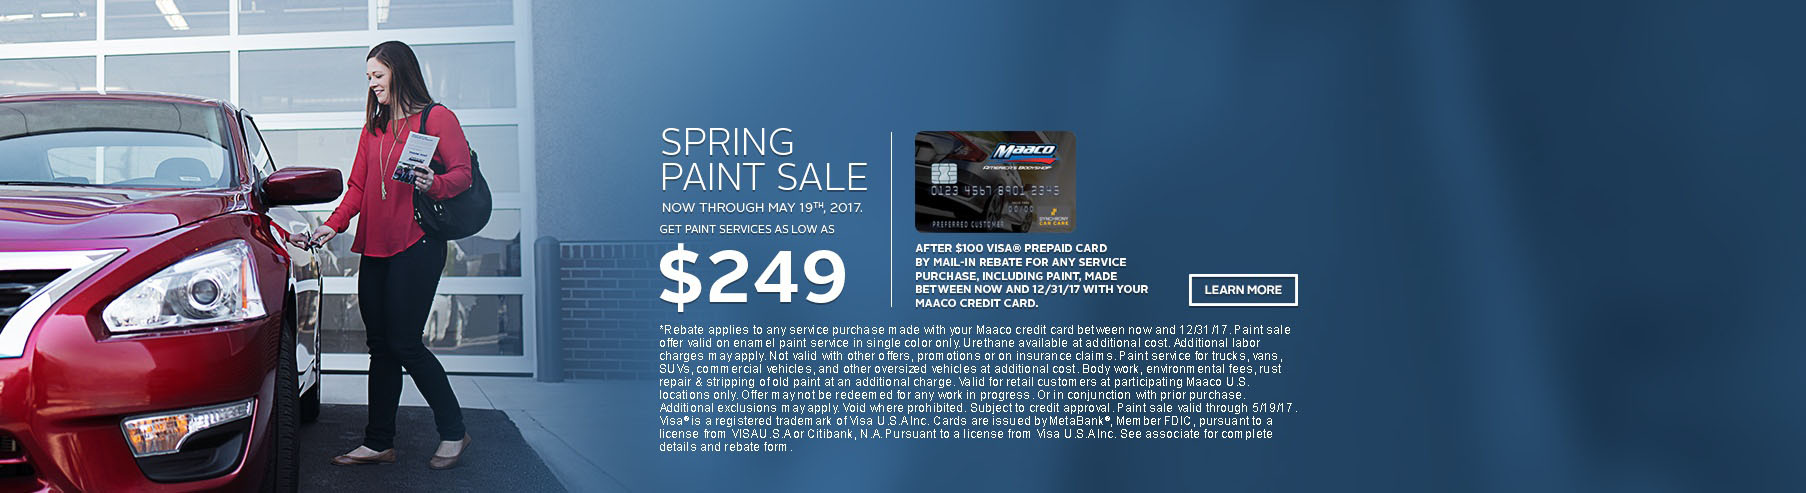 Maaco: Spring Paint Sale Starting at $249 after $100 rebate from using your Maaco Credit Card, click Learn More for further details.